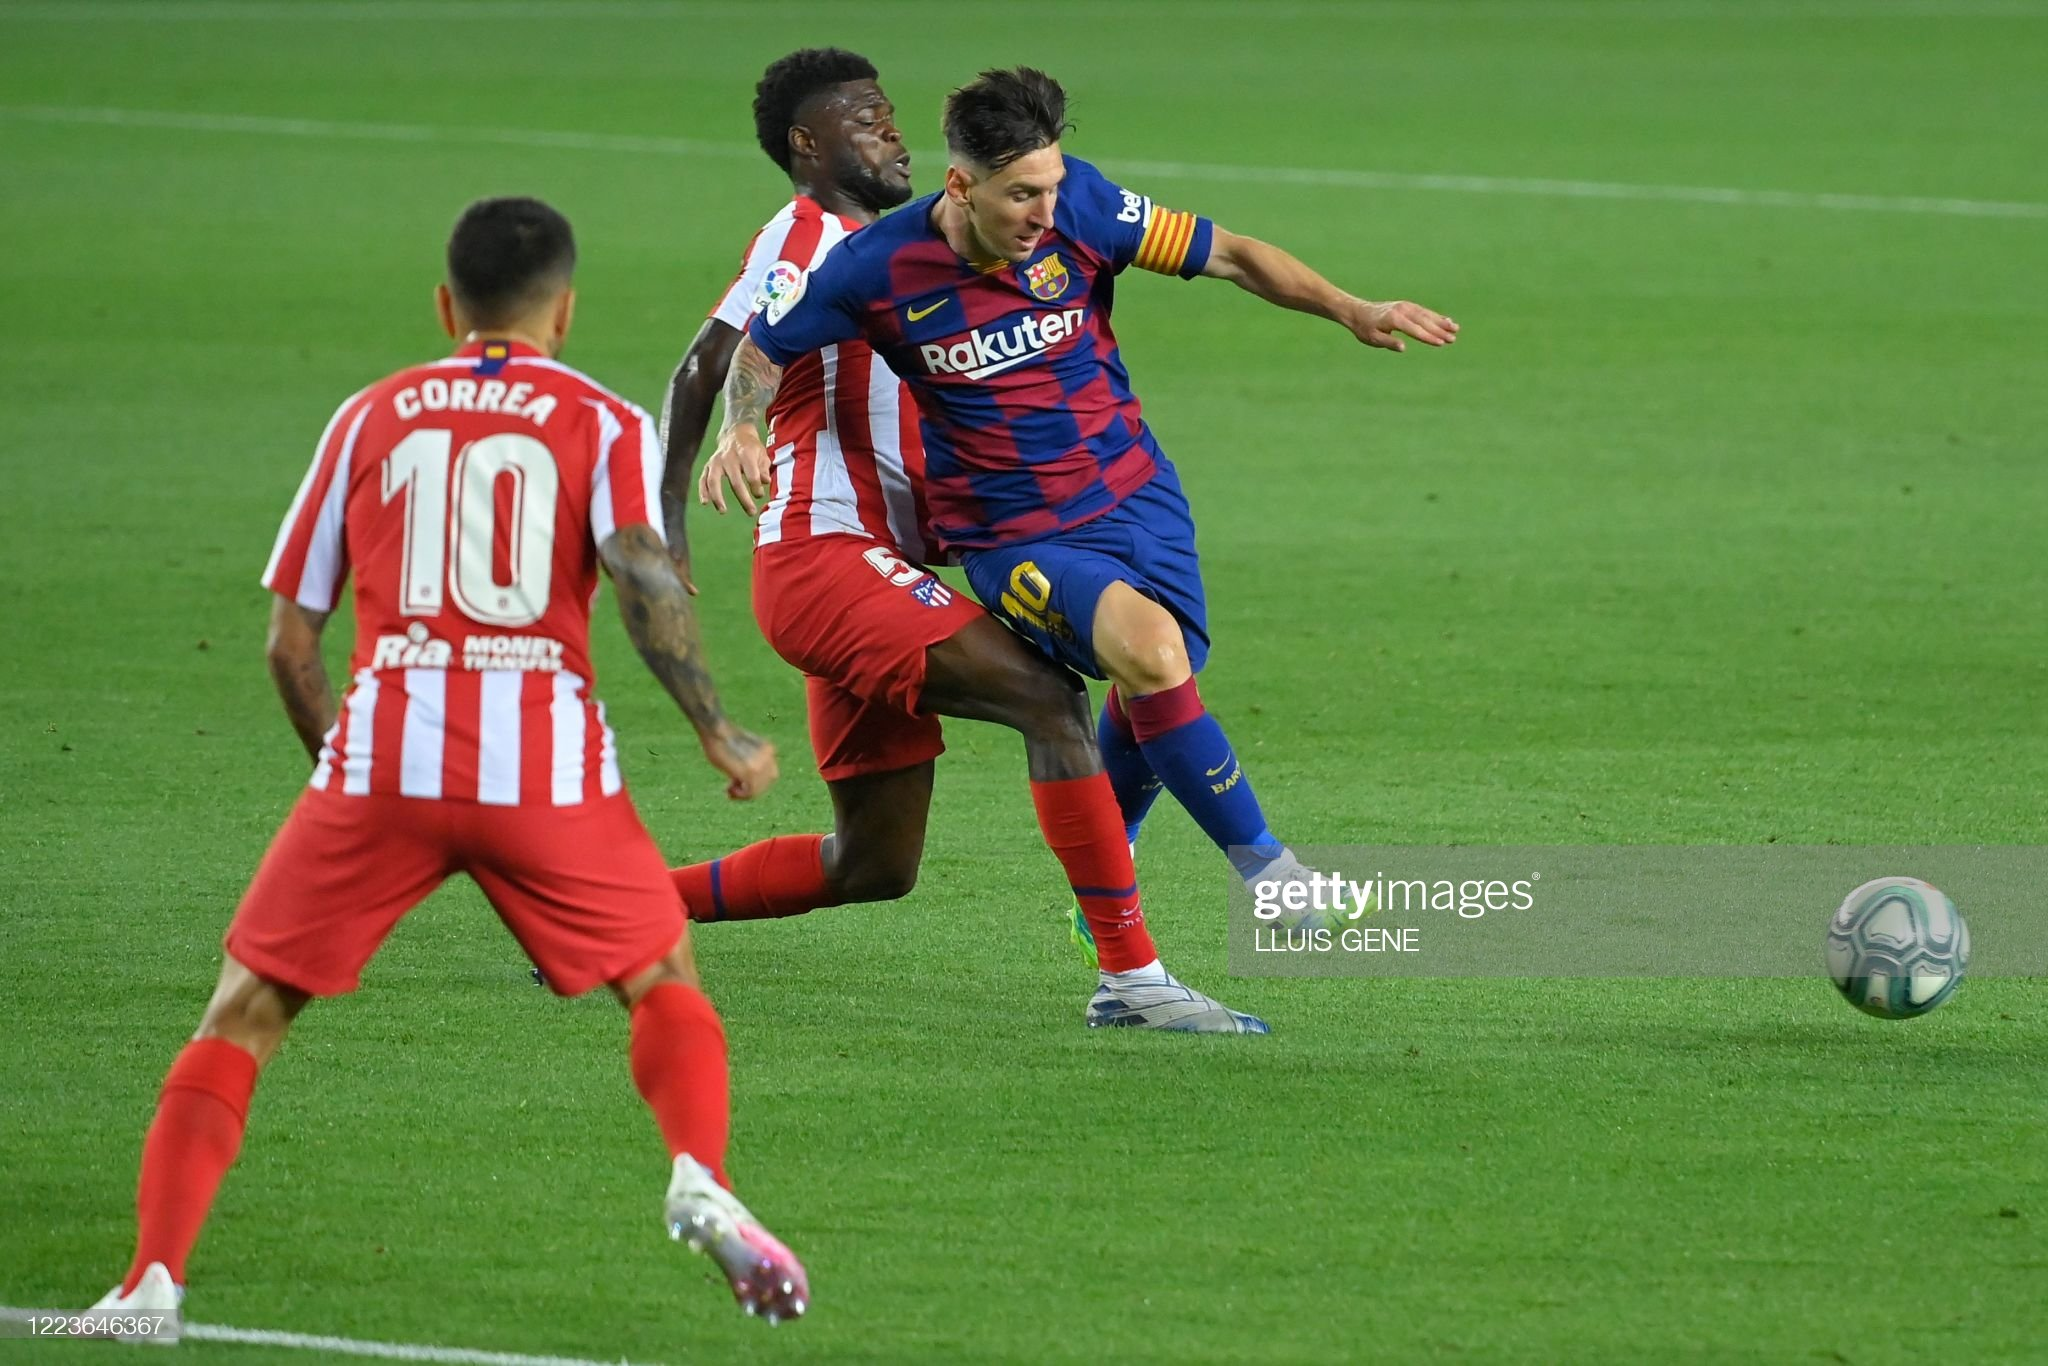 FBL-ESP-LIGA-BARCELONA-ATLETICO MADRID : News Photo